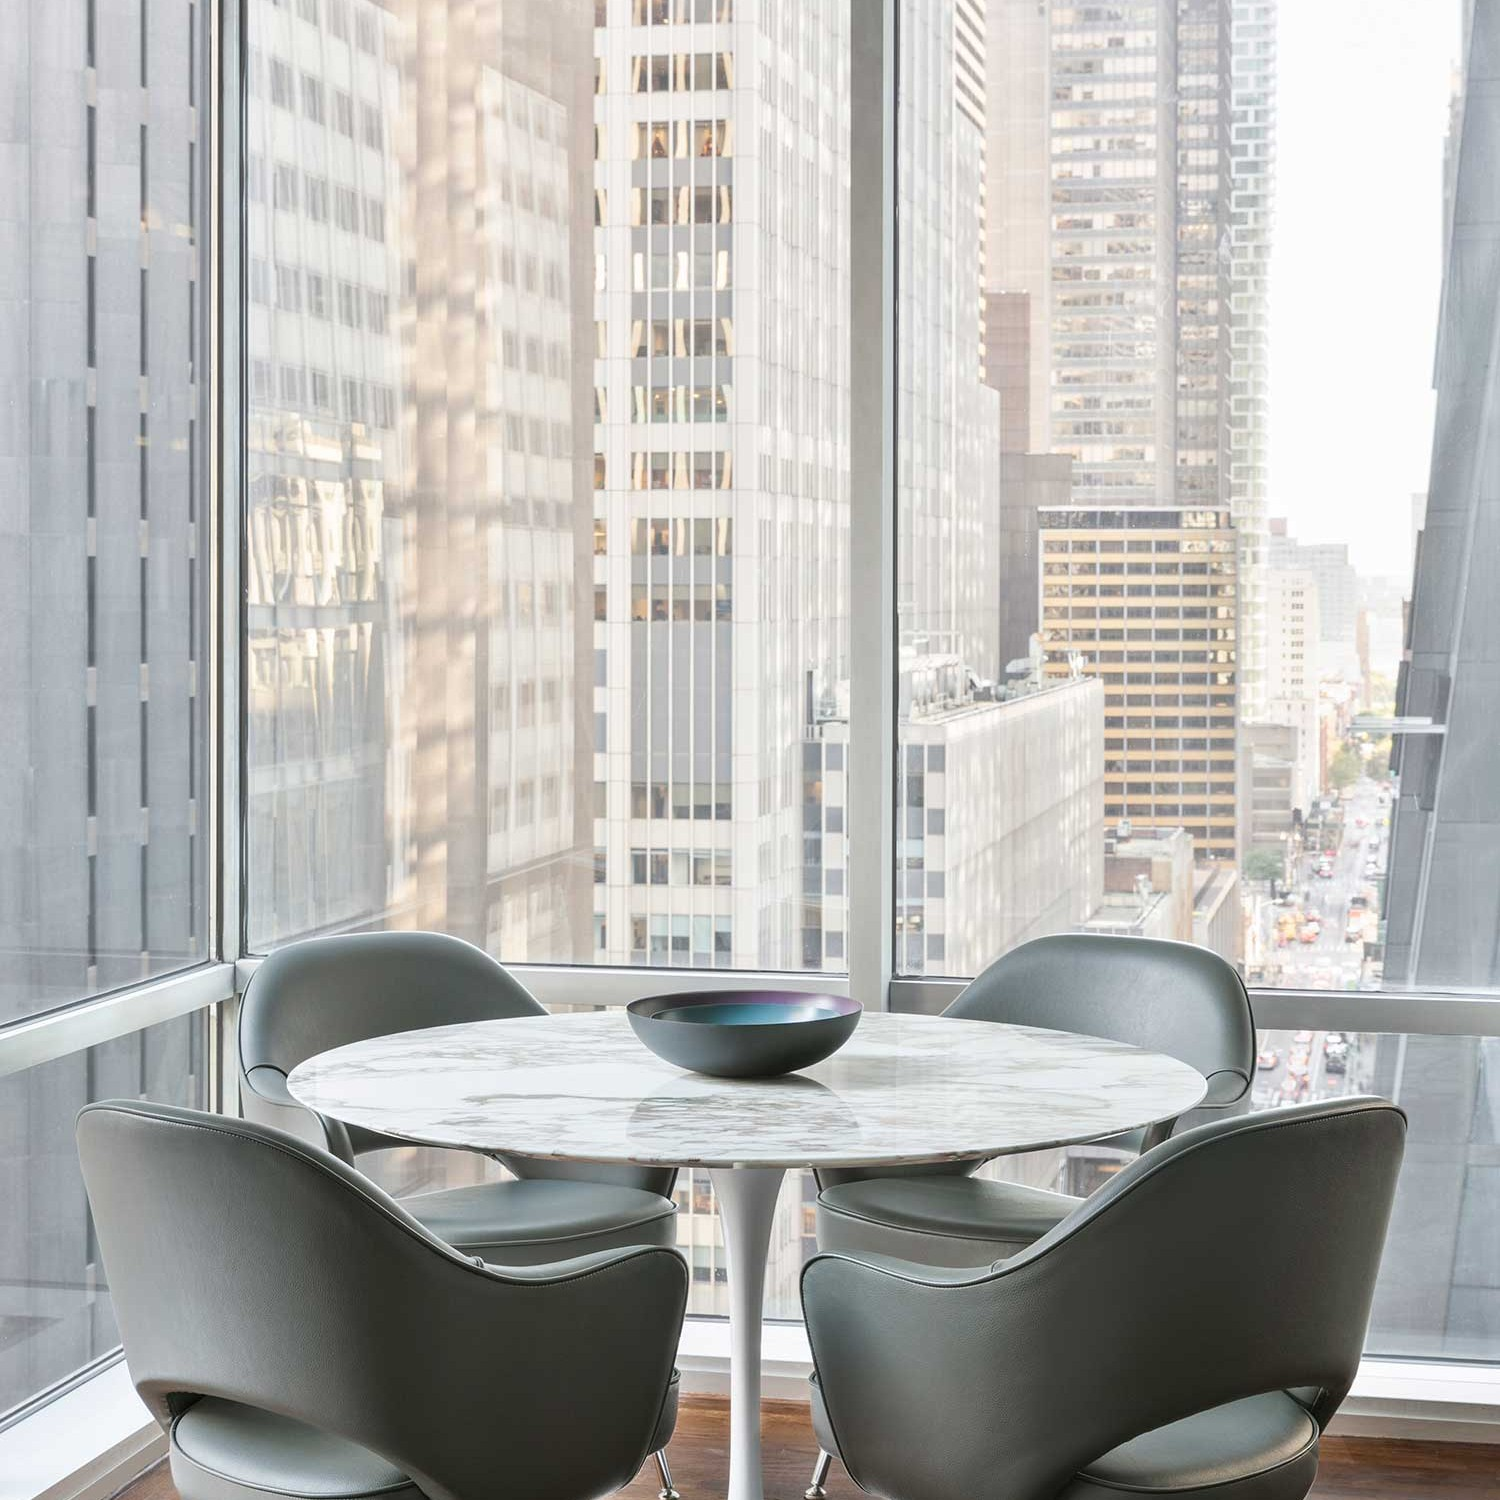 saarinen dining table and chairs add to this dining room with a view